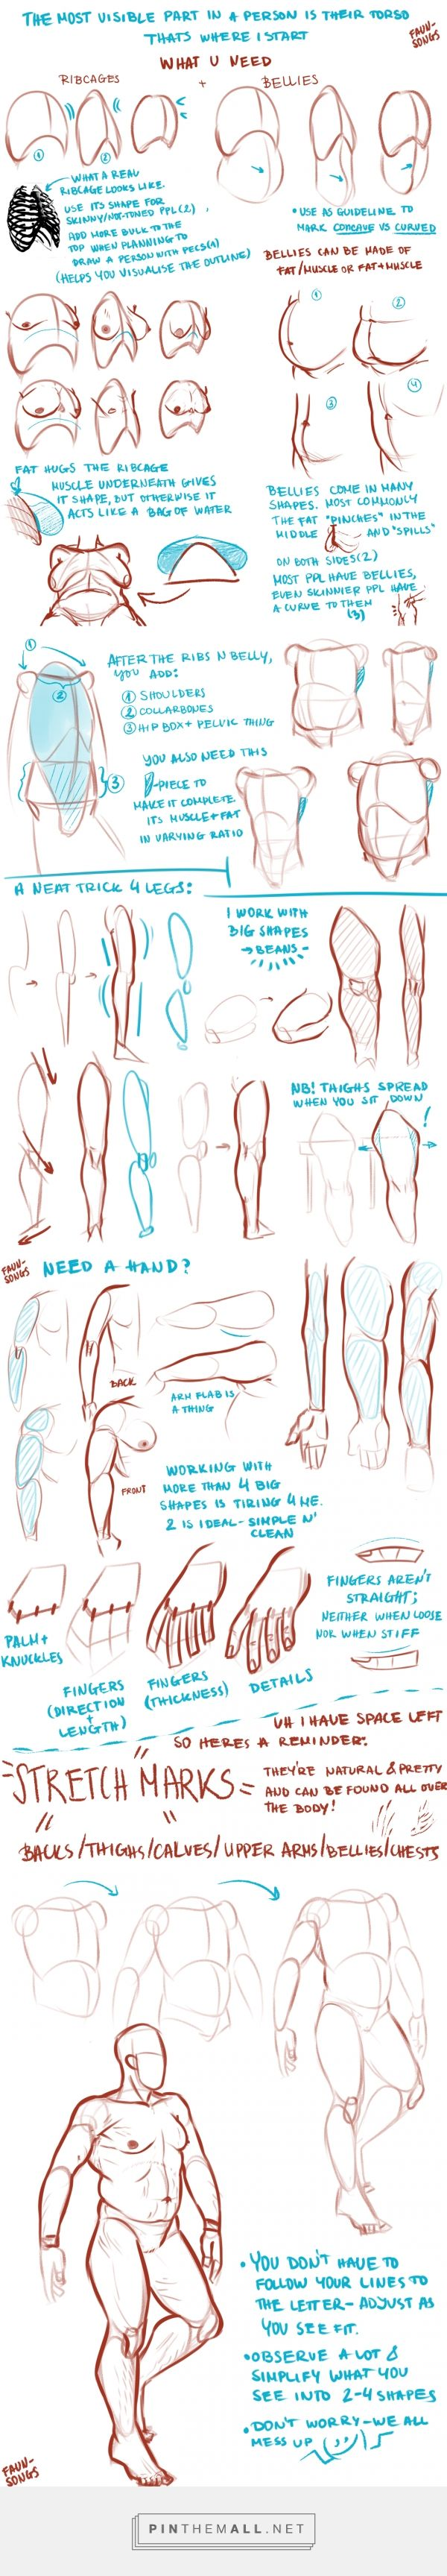 body drawing tips by faun-songs #tumblr #drawing #tutorial #figuredrawing #drawingtips #drawingtutorial #characterdesign